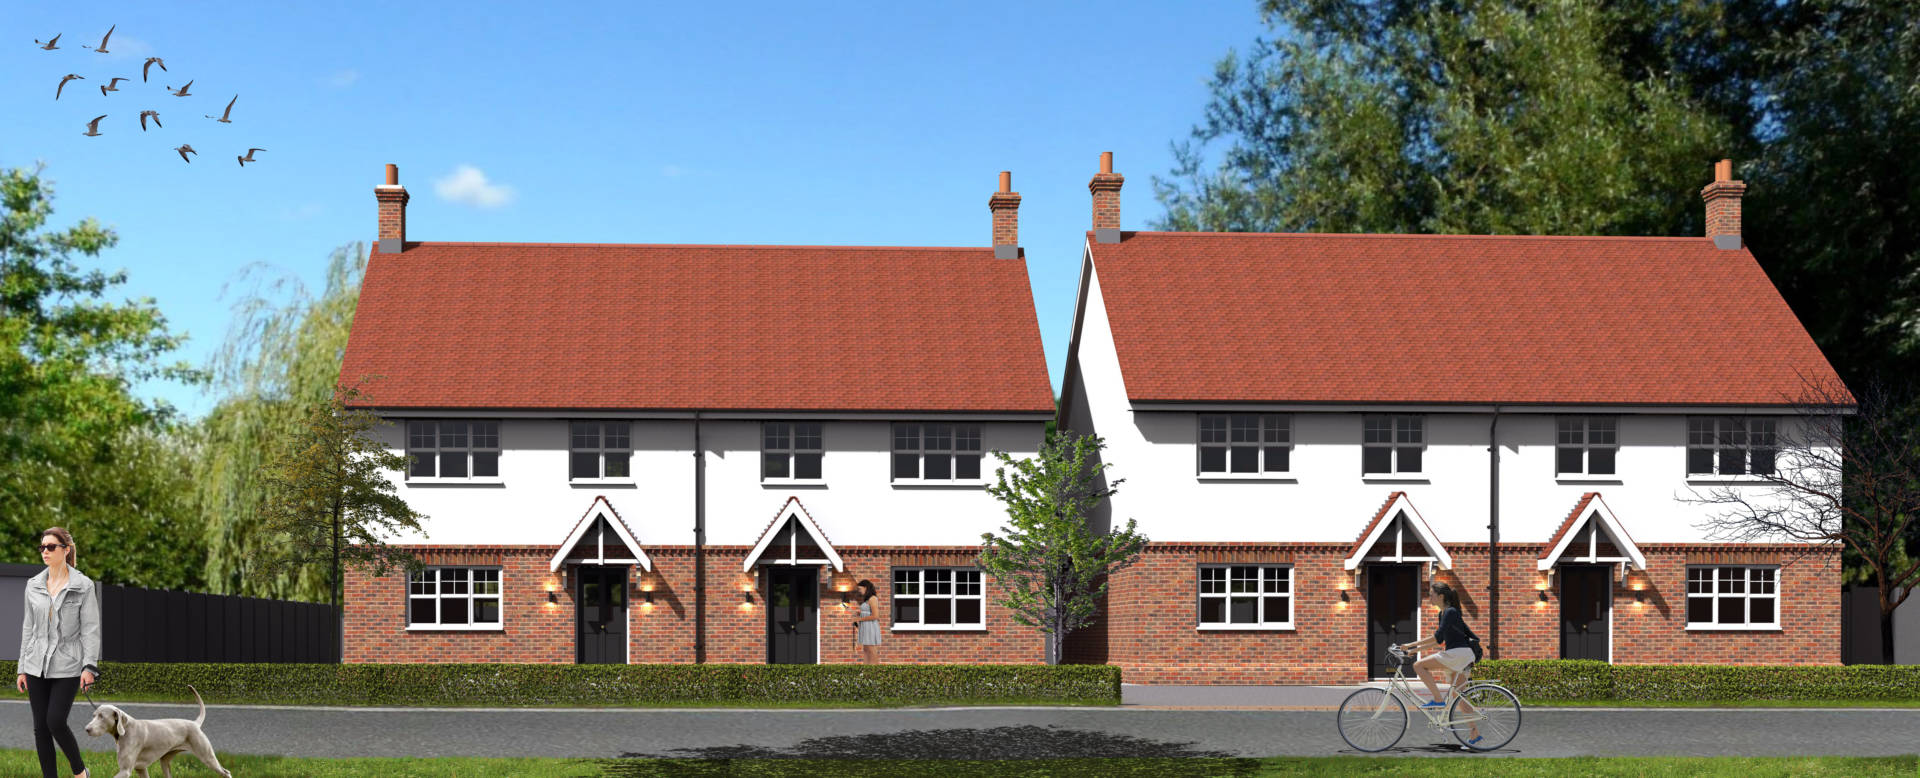 Coming Soon - New Build Family Homes in Shepherdswell